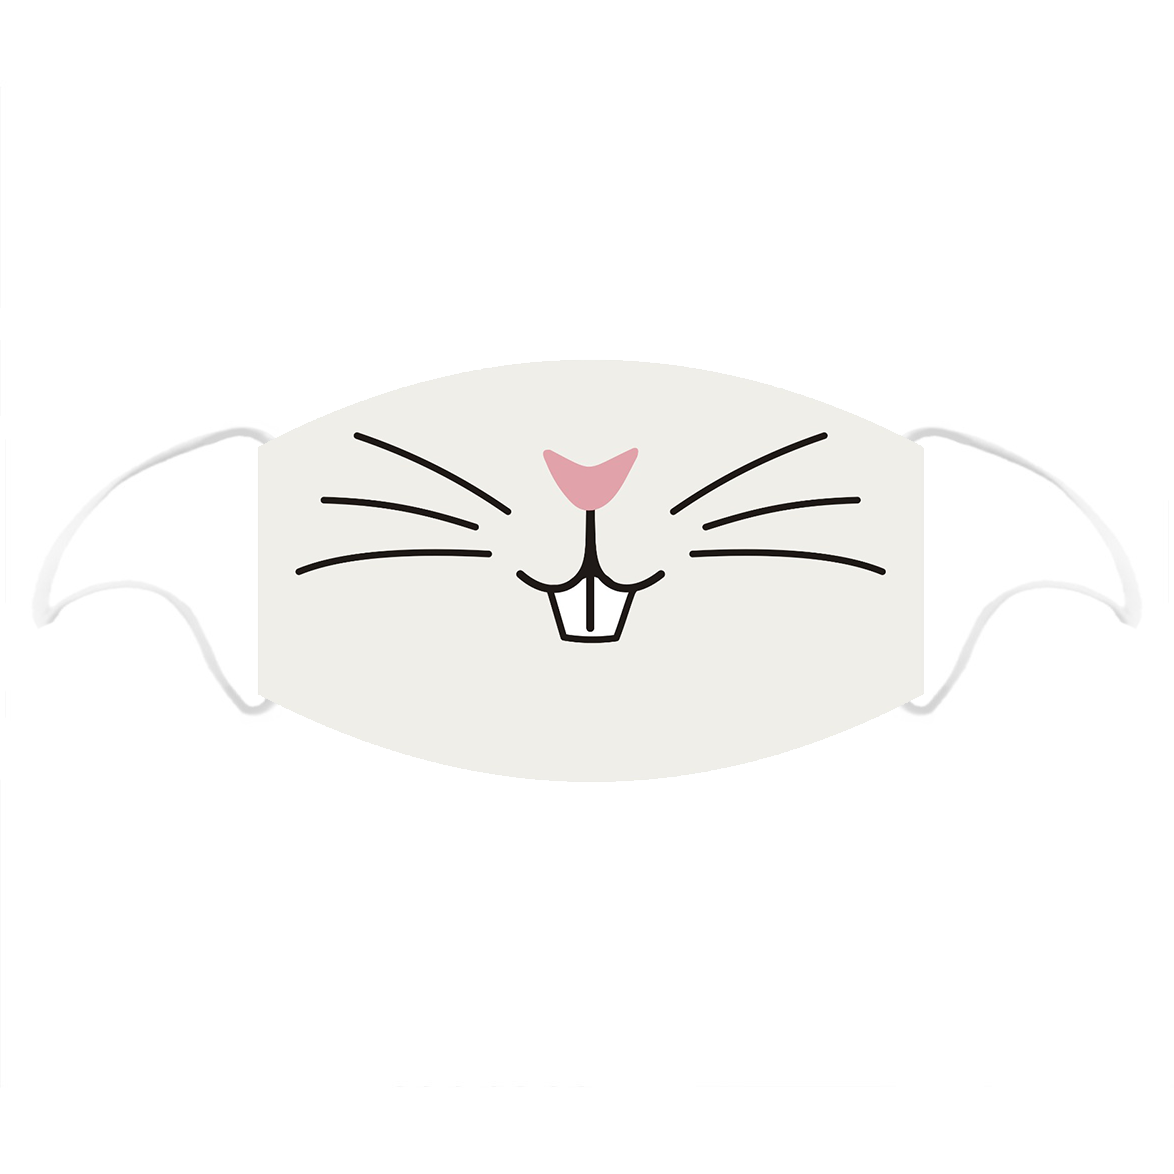 Kitty Printed Cotton Face Mask With Filter Pocket